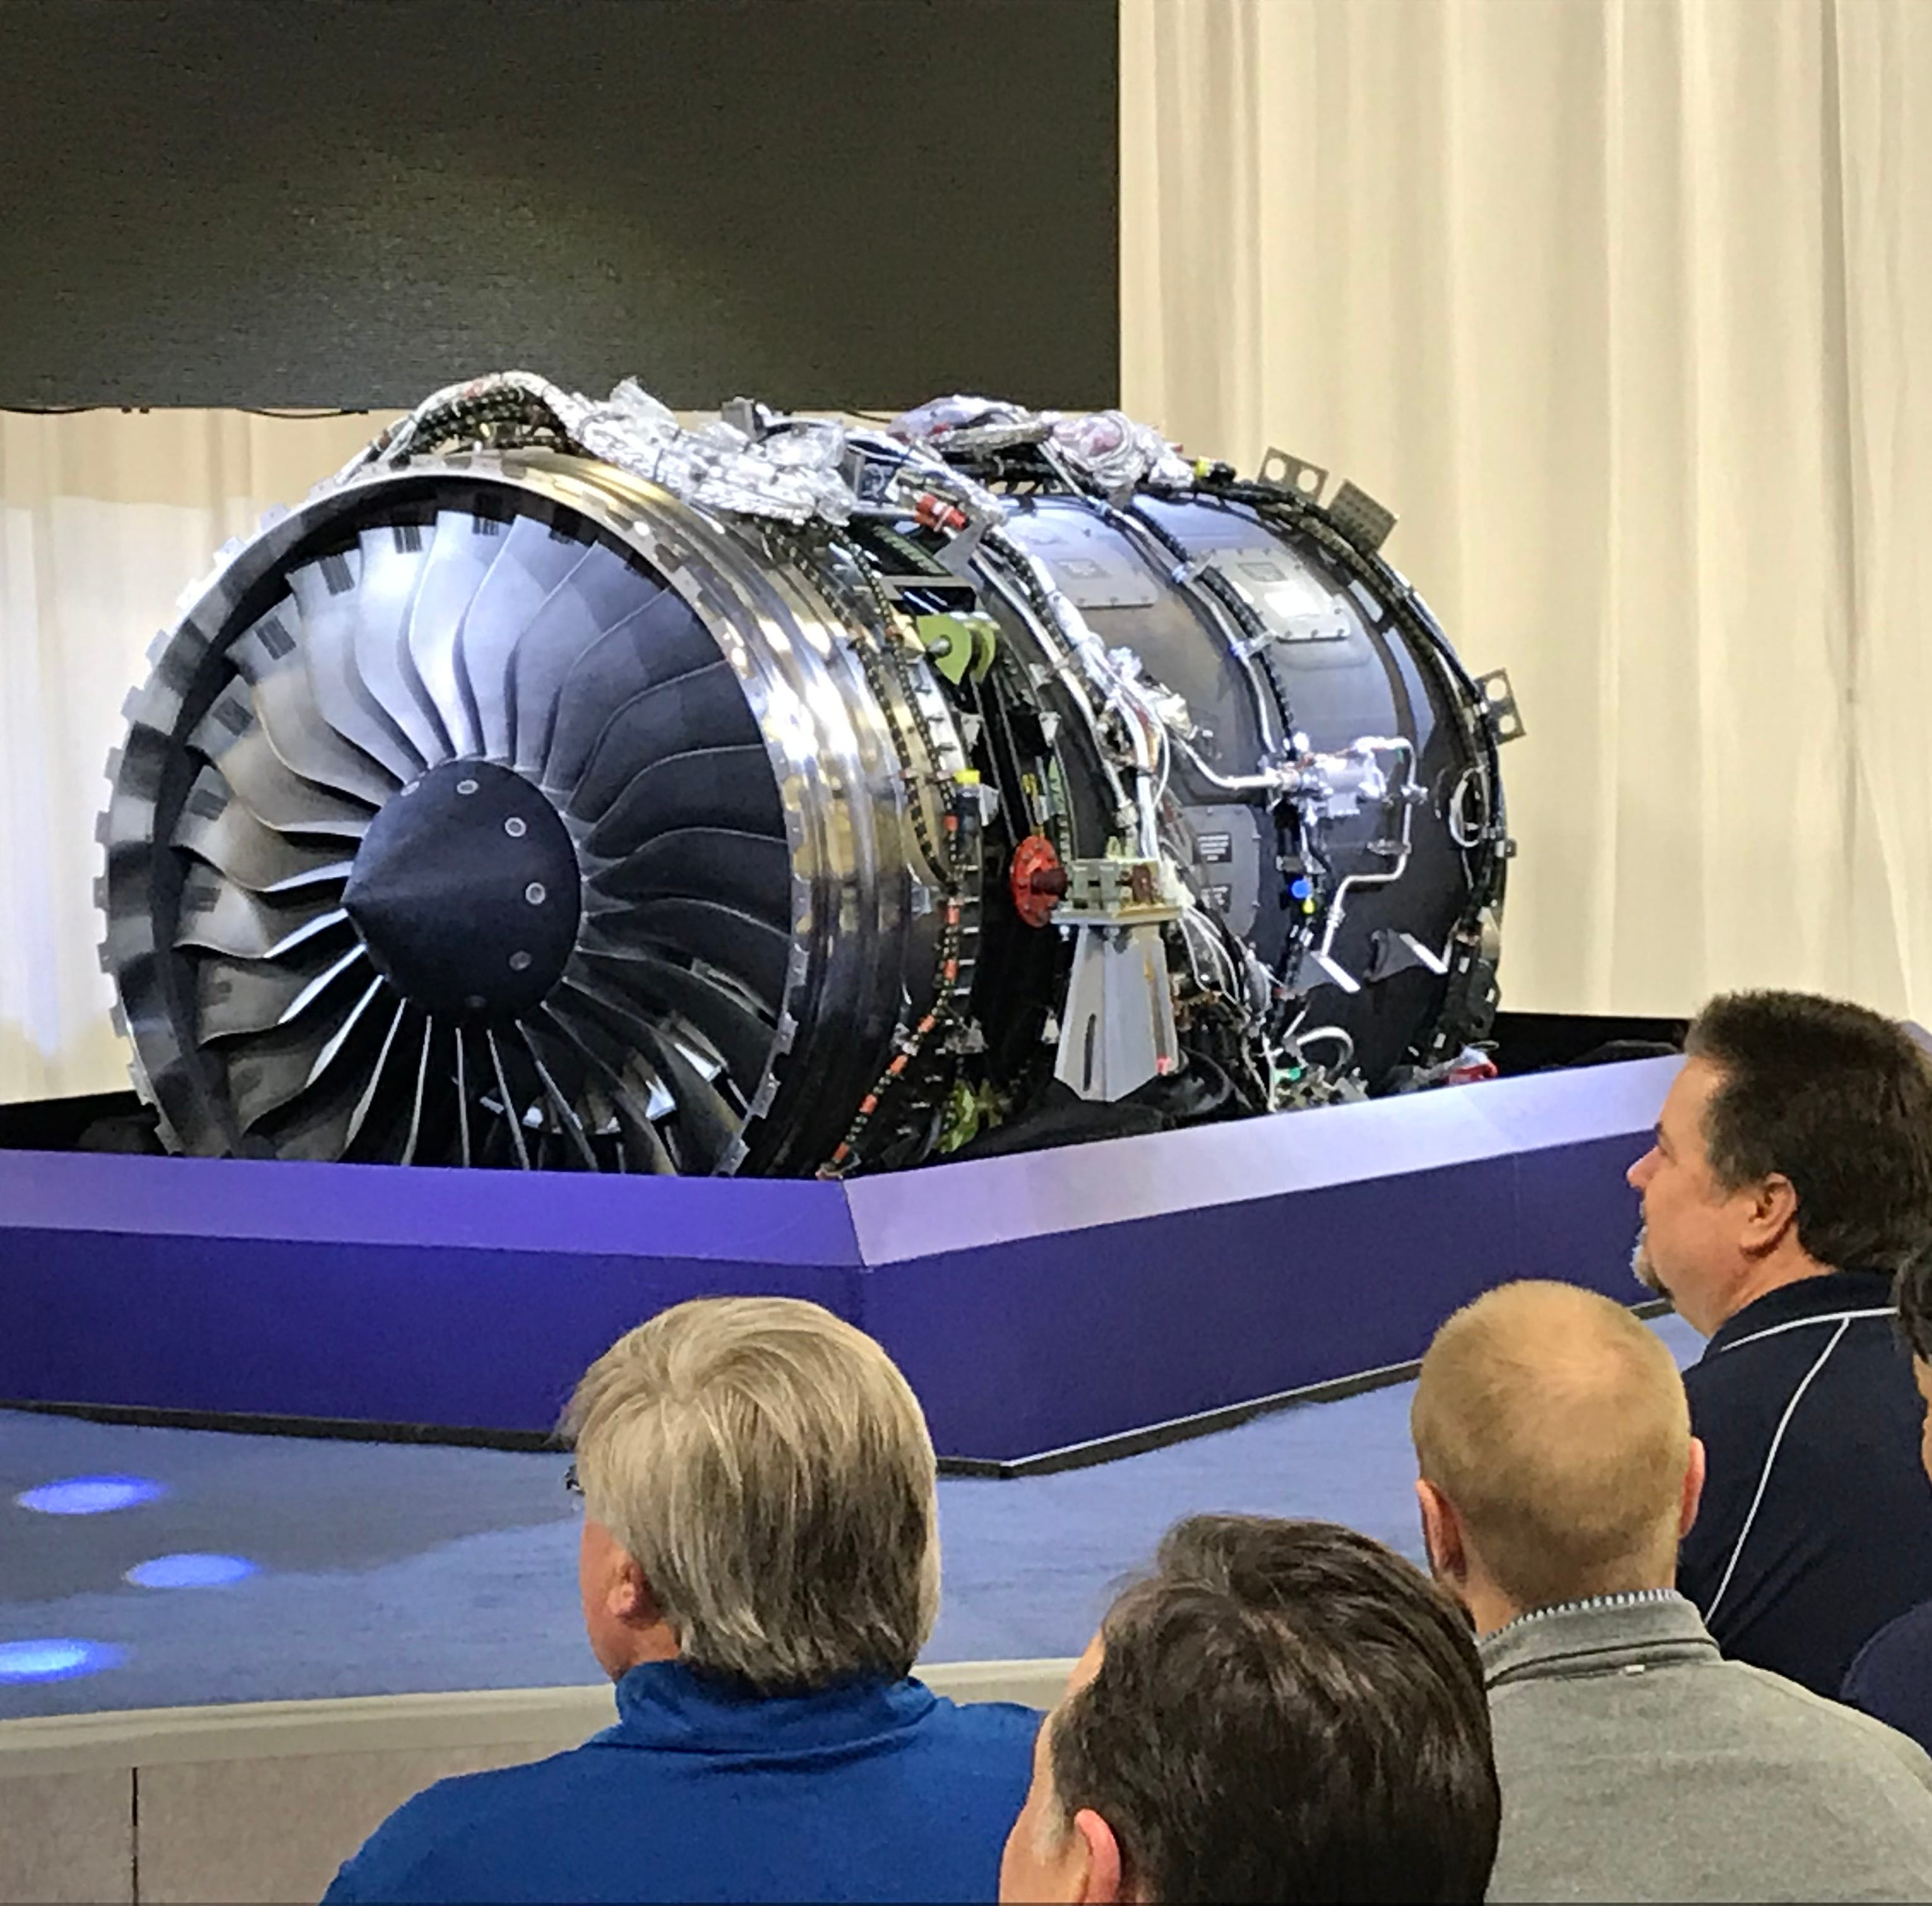 Rolls-Royce Indianapolis to compete for $1B U.S. Air Force contract, new jobs